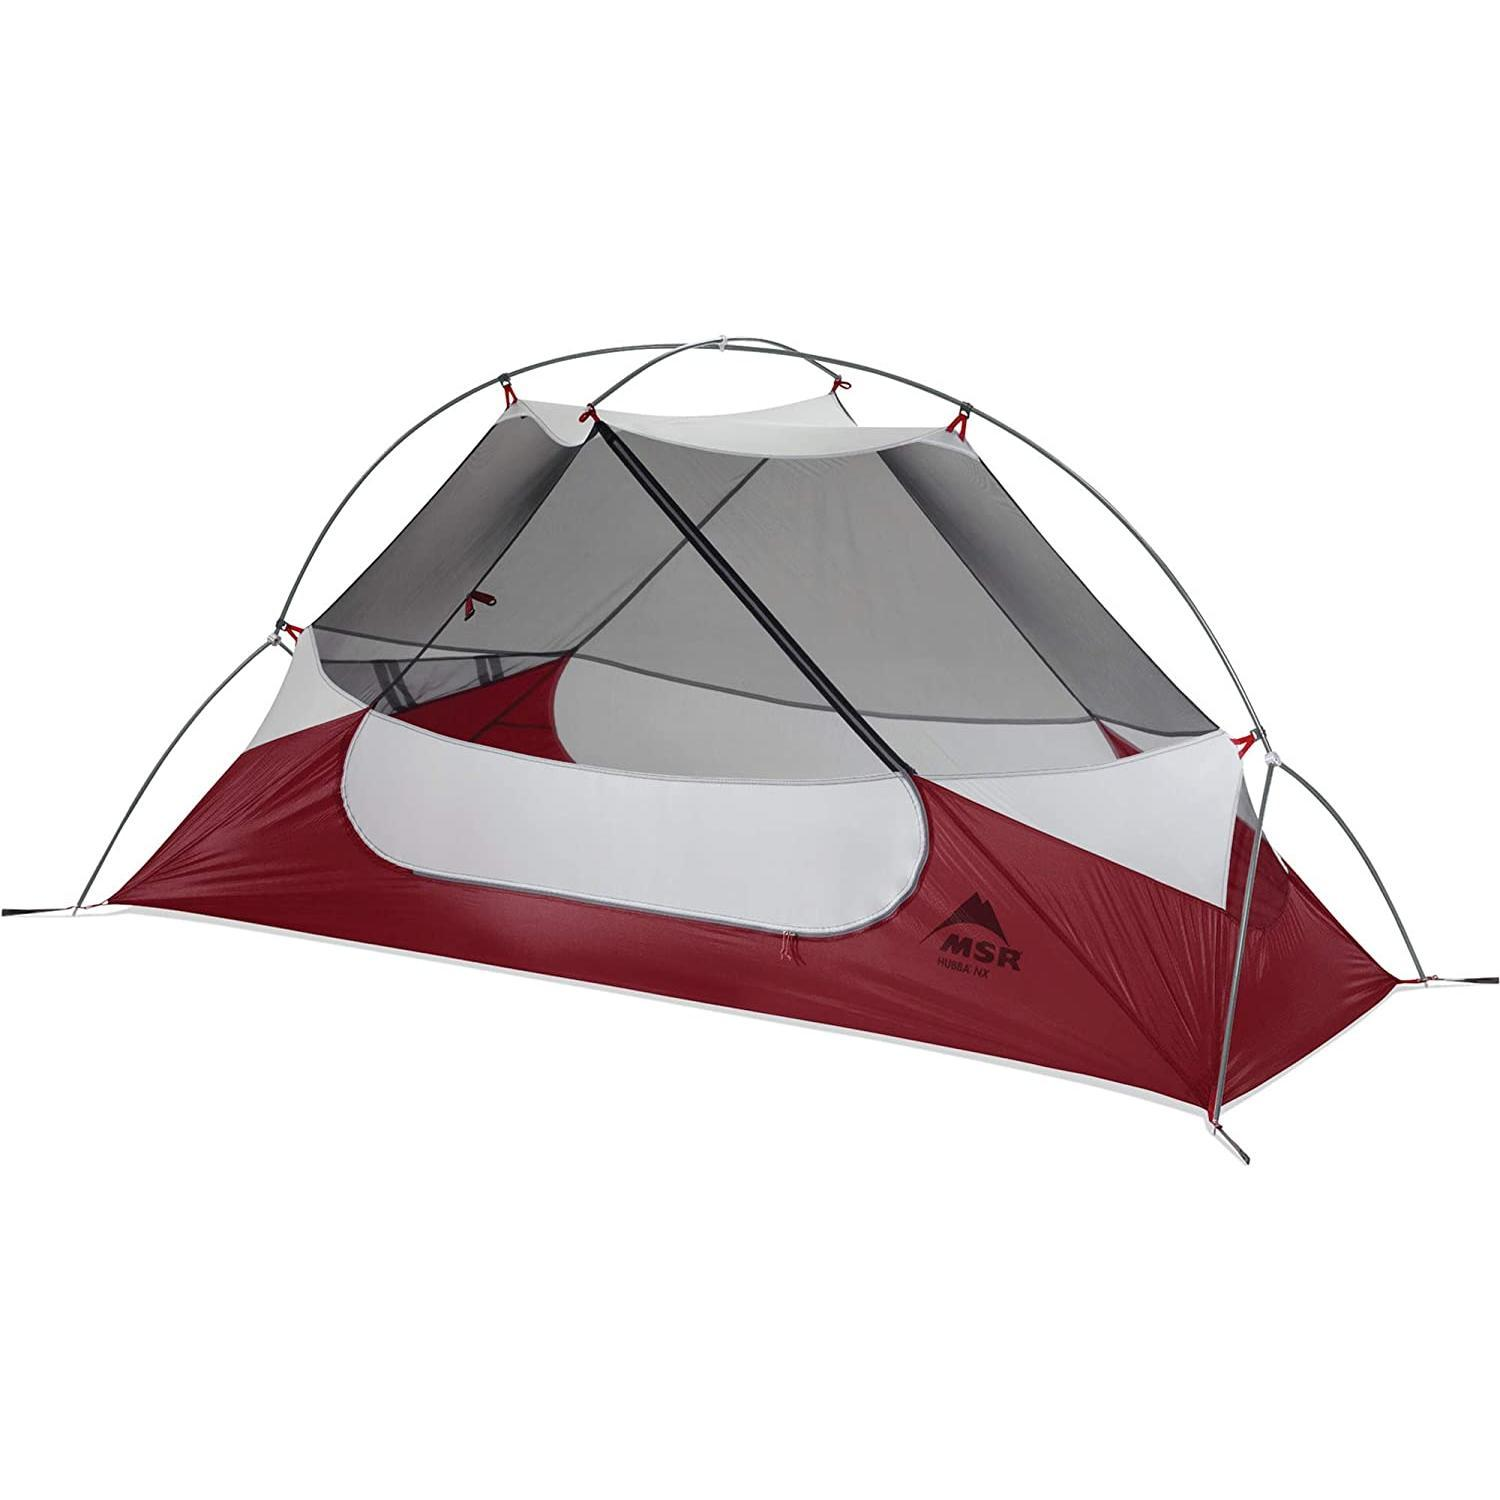 MSR Hubba NX 1-Person Lightweight Backpacking Tent